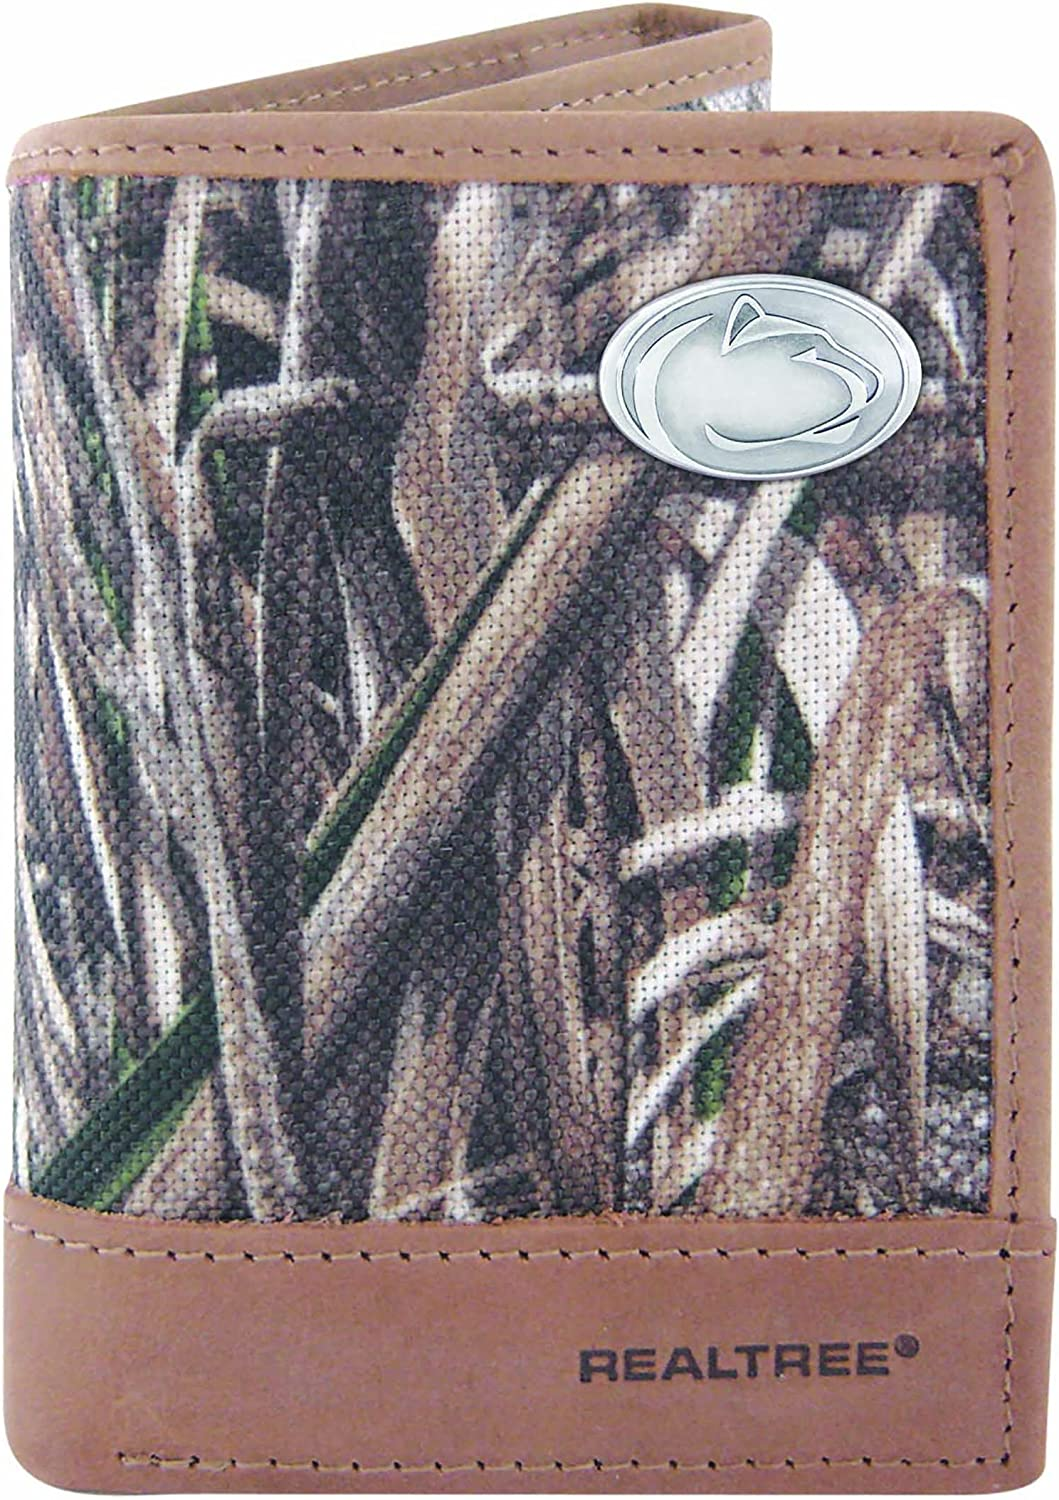 Camouflage ZEP-PRO Lsu-iwnt2-rt NCAA Lsu Tigers Zep-Pro Realtree Nylon and Leather Trifold Concho Wallet